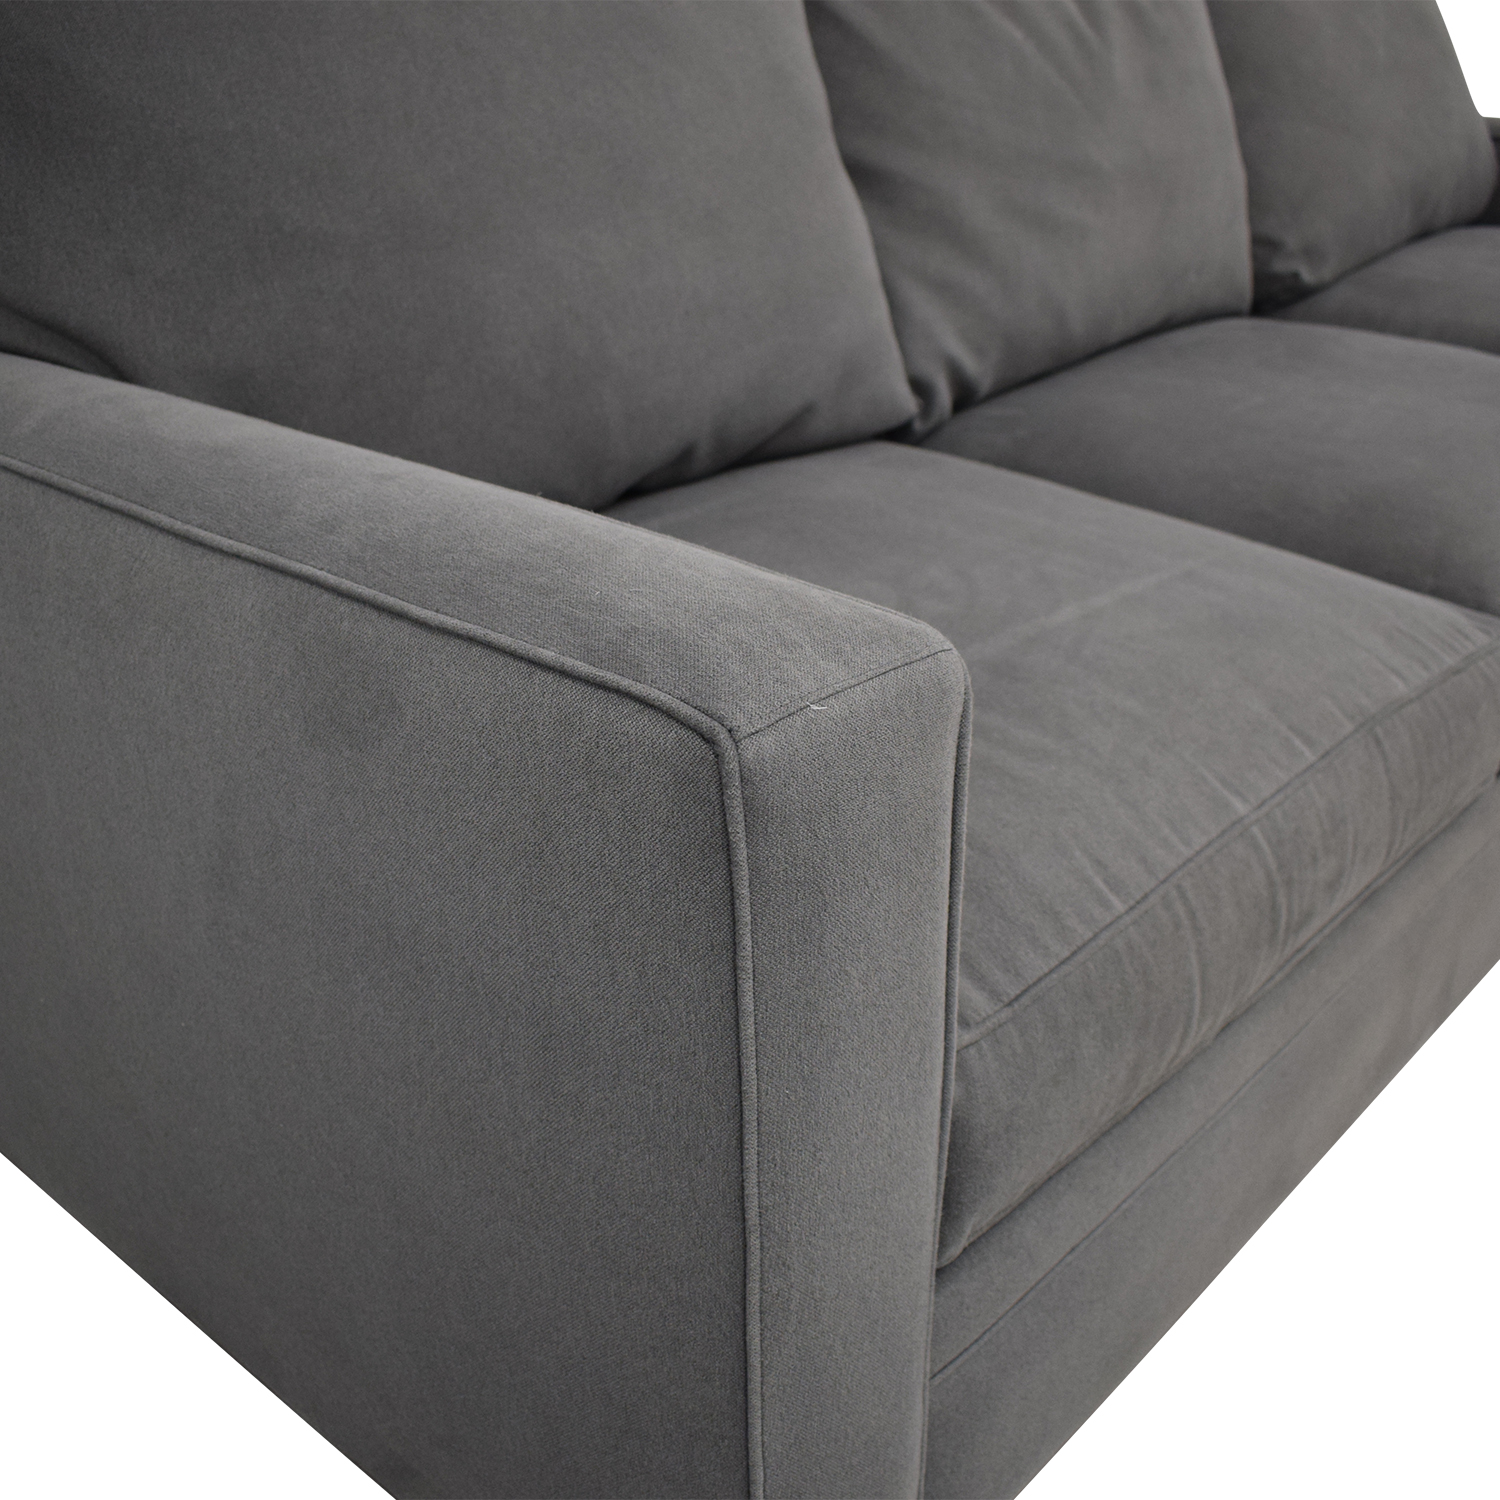 Room & Board Room & Board Orson Sectional Sofa with Chaise grey